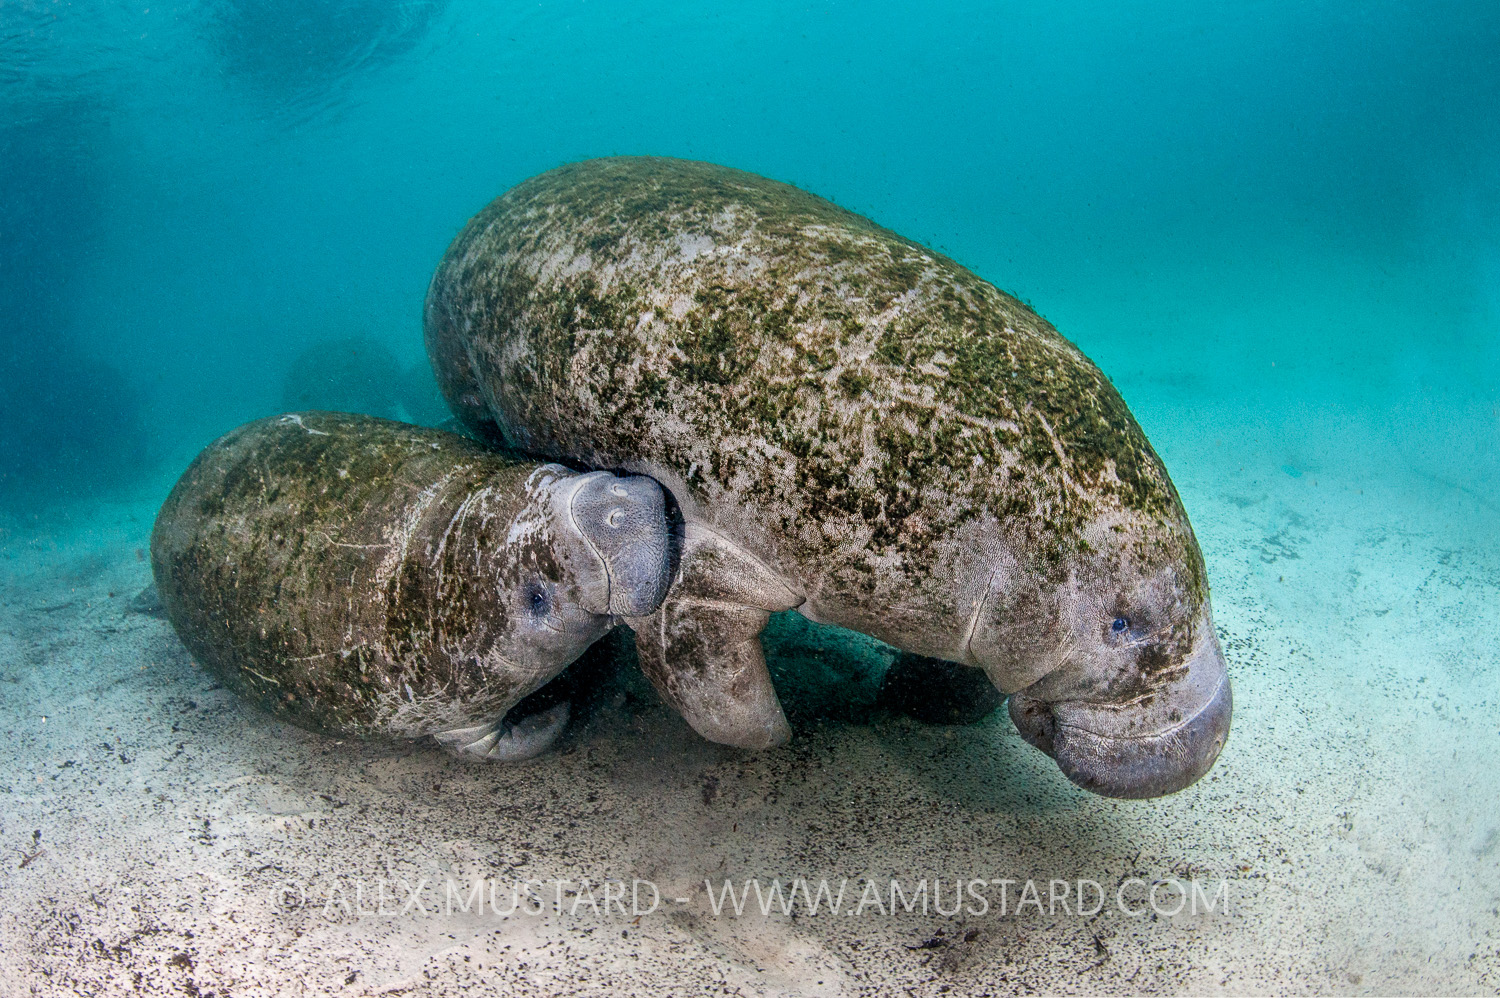 A baby Florida manatee (Trichechus manatus latirostrus) drinks milk from its mother. Three Sisters Spring, Crystal River, Florida, United States of America.